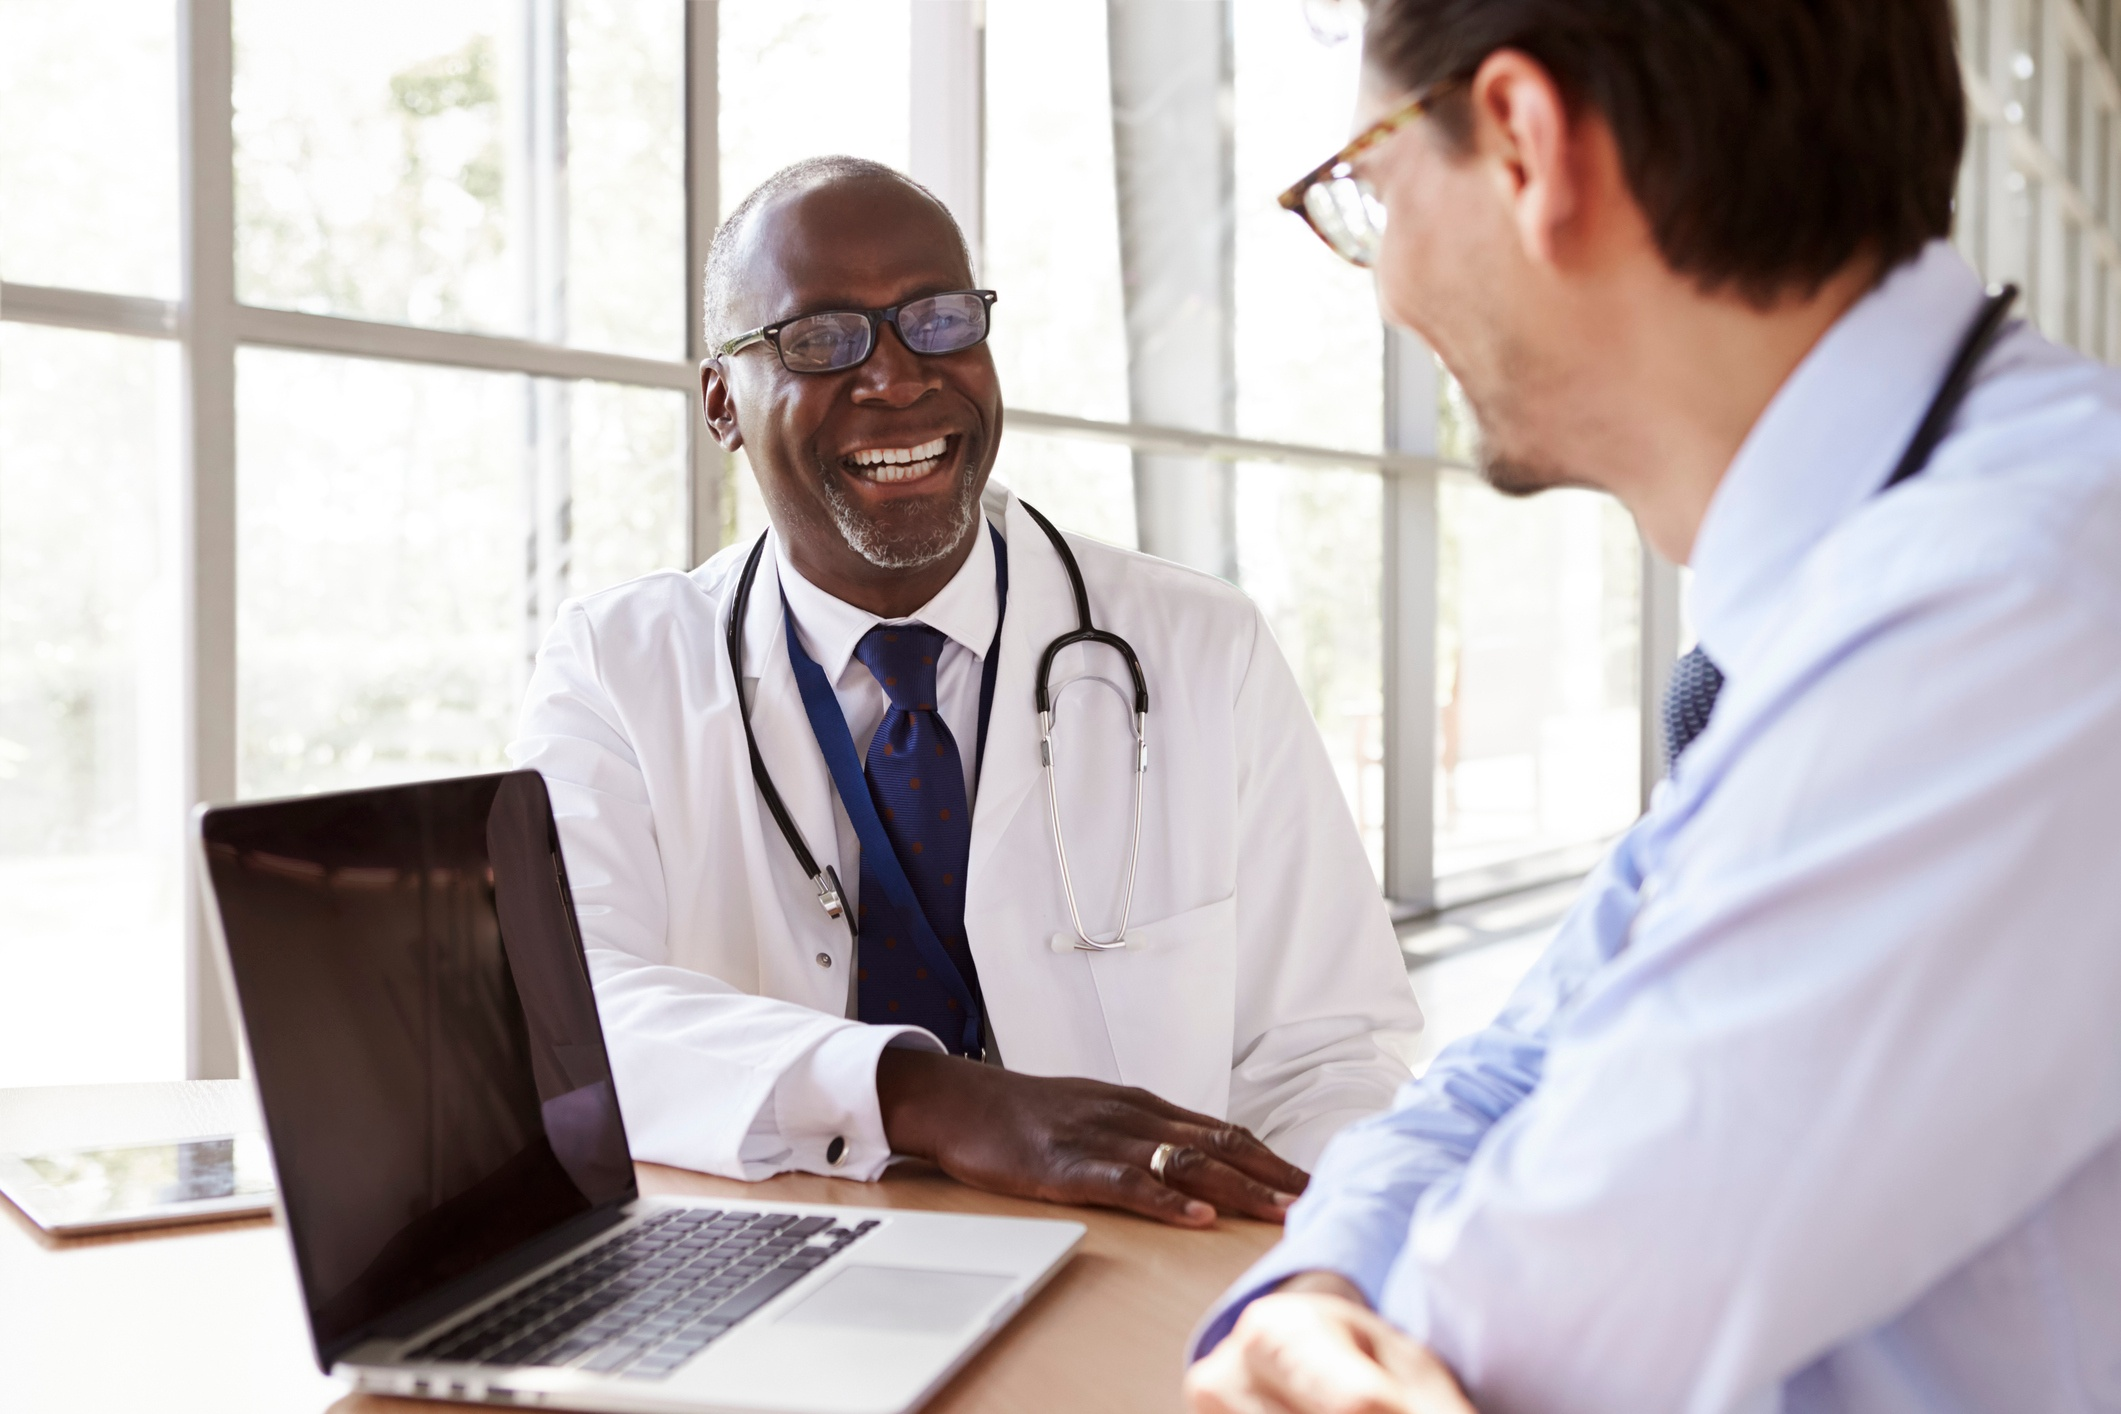 Take Control of Your Schedule With Locum Tenens